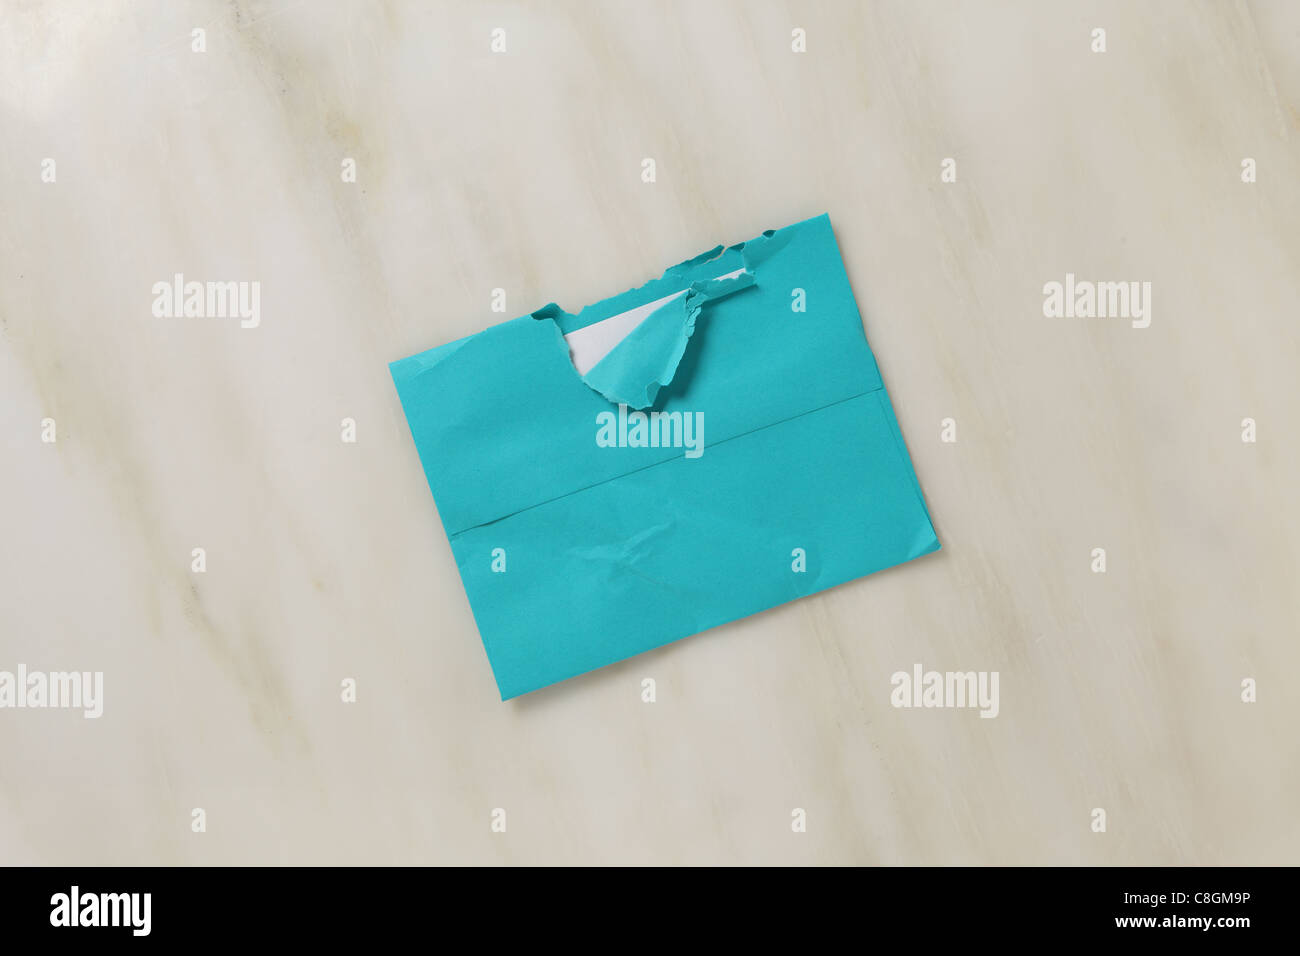 A used and slightly torn open postal envelope on a marble surface Bright teal blue colored envelope - Stock Image